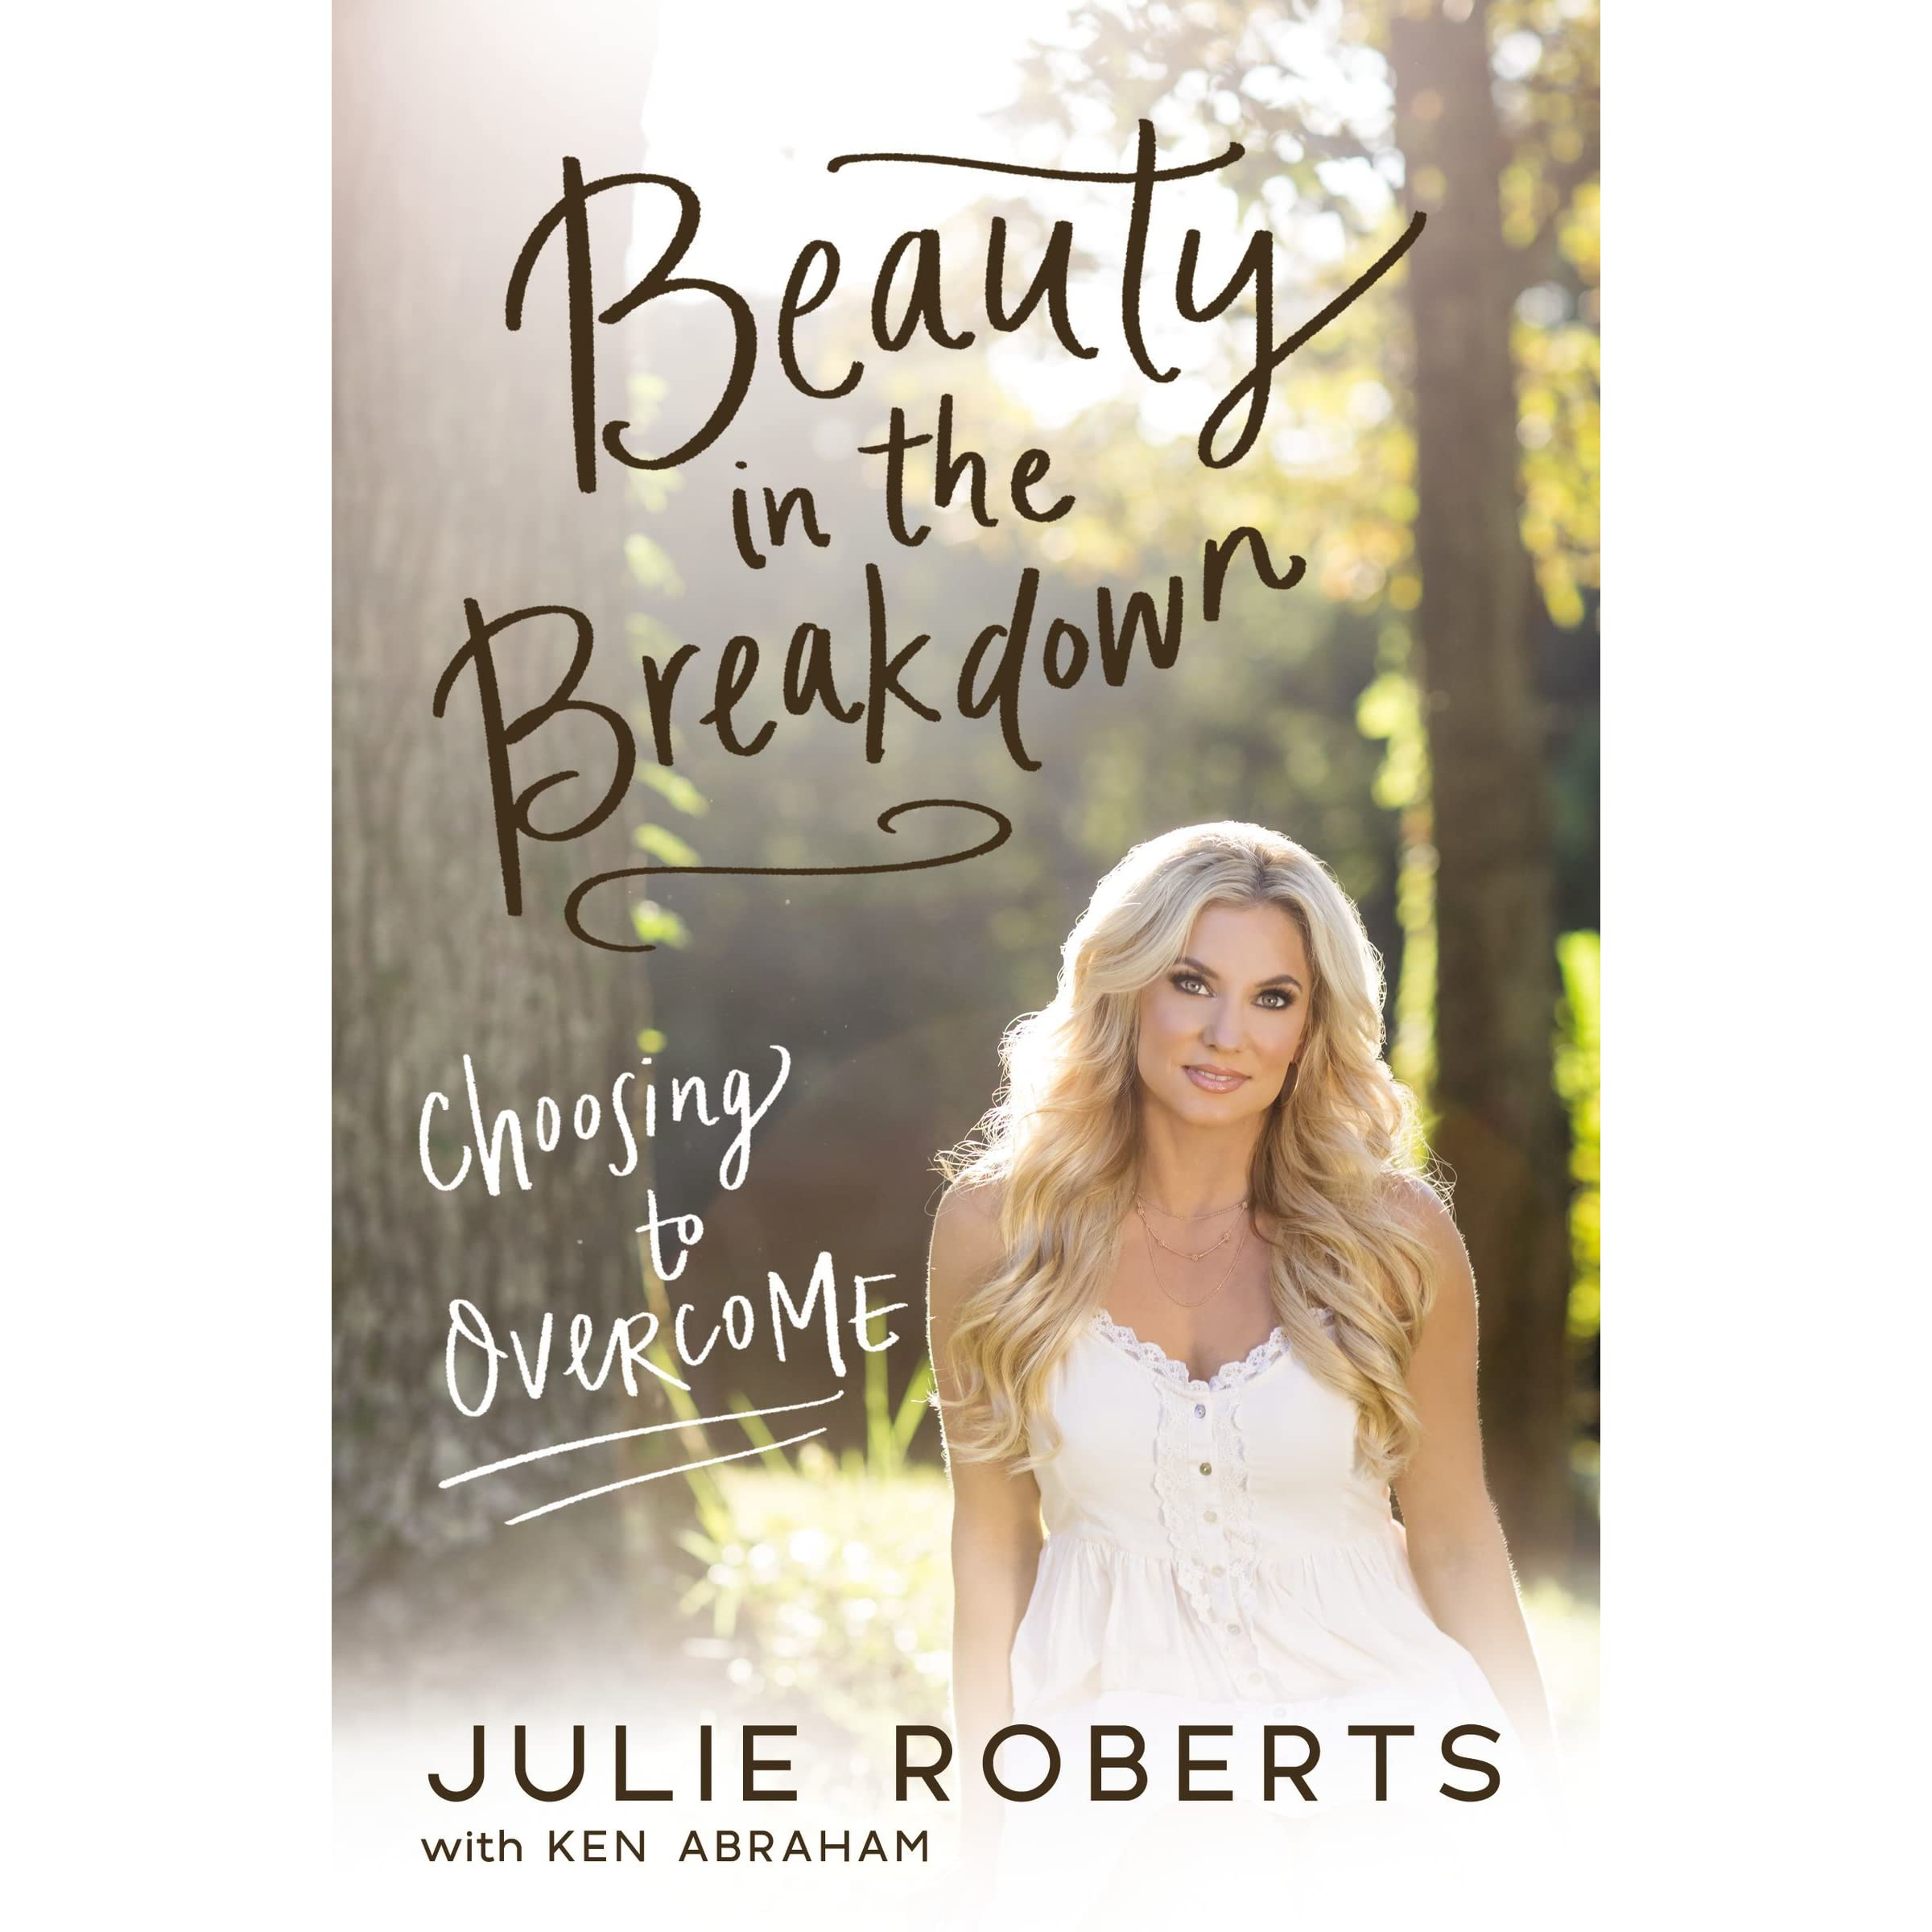 The Beauty To Julie By BreakdownChoosing In Overcome Roberts 08nwNyvmO